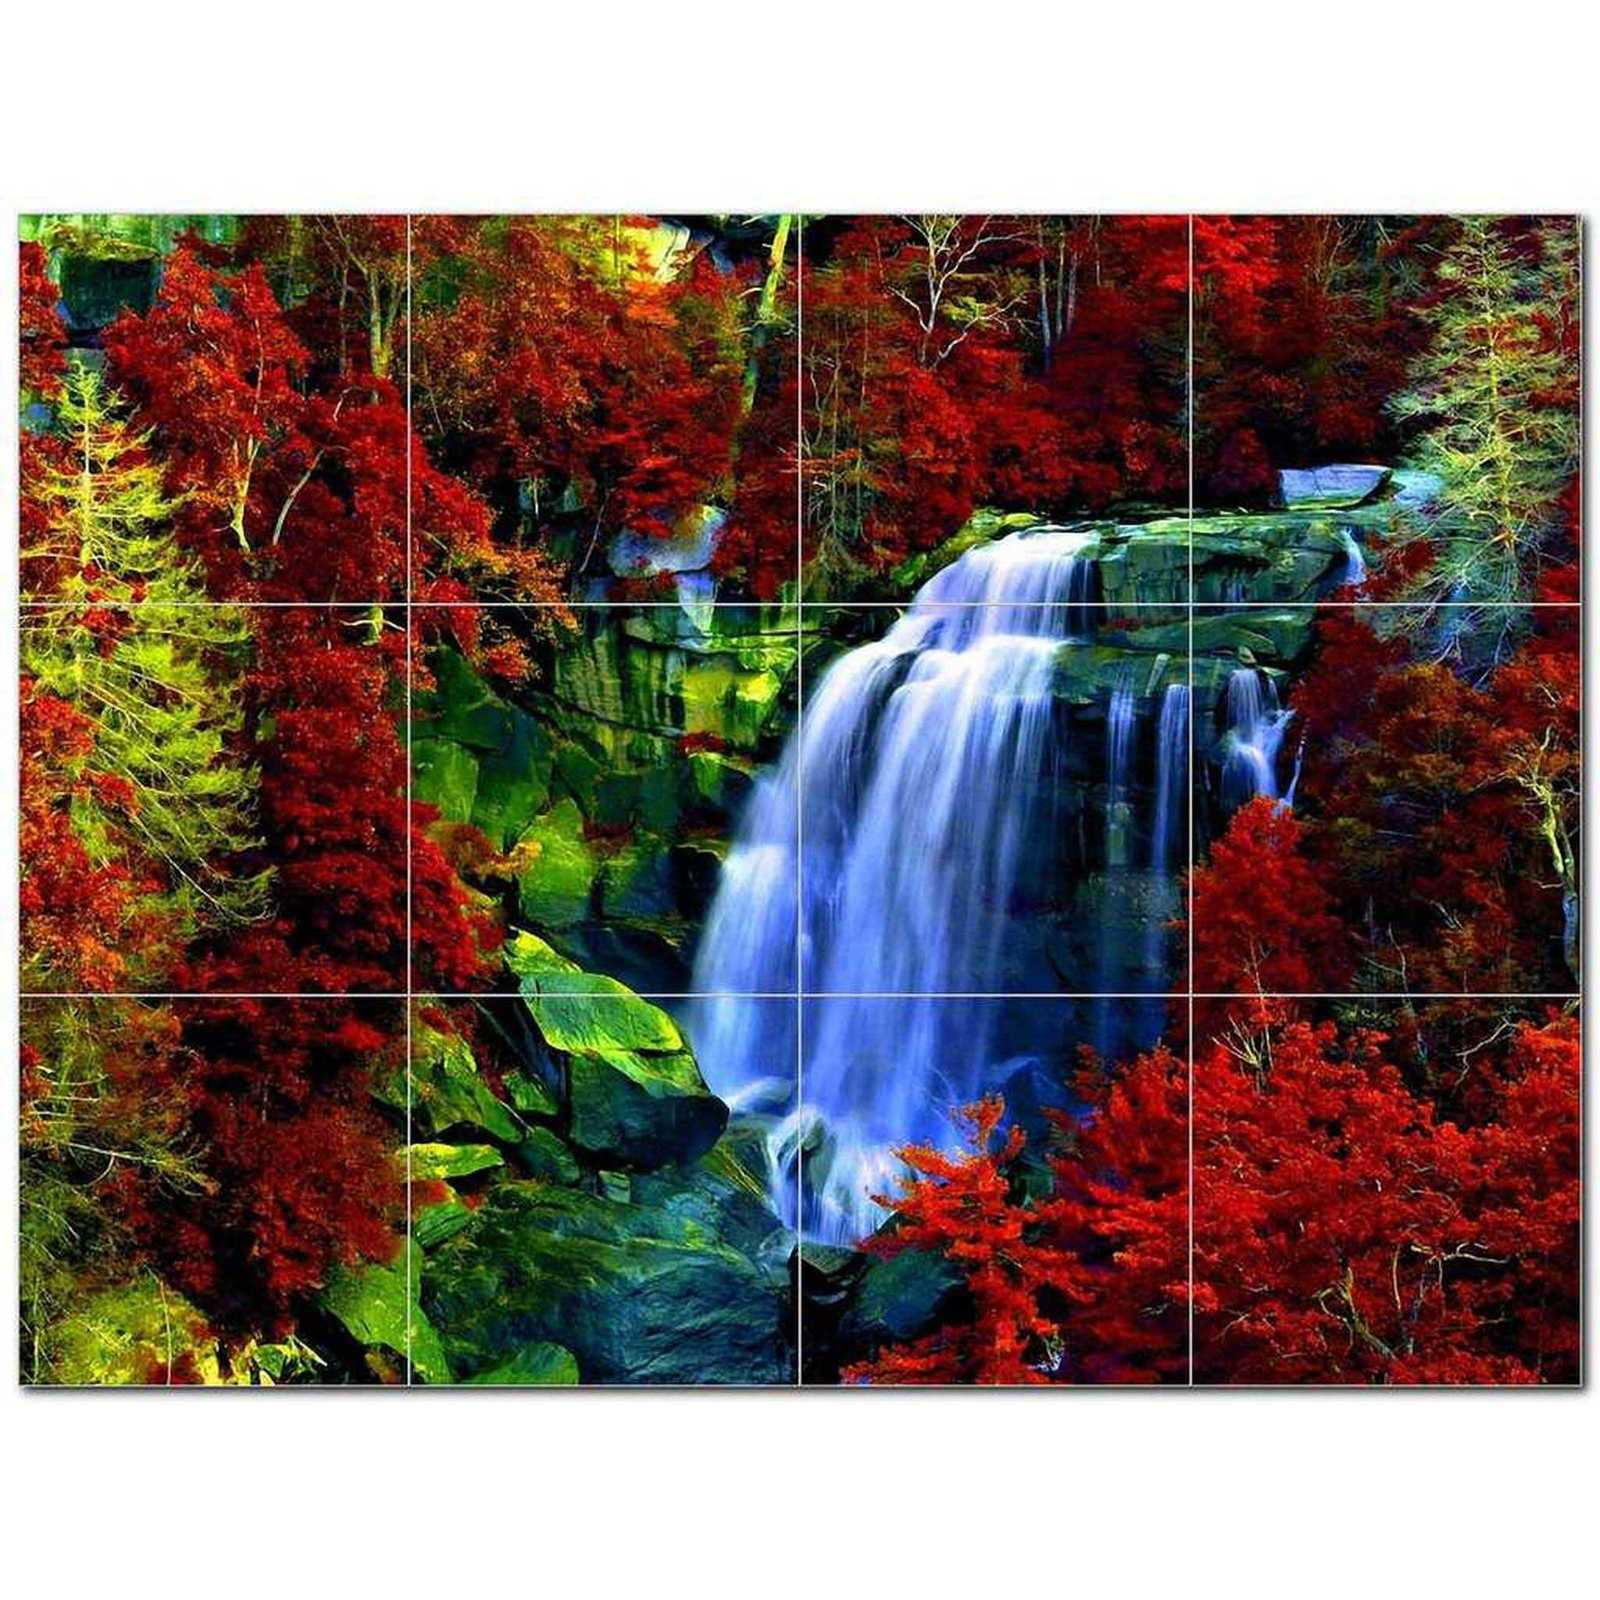 Primary image for Waterfall Photo Ceramic Tile Mural Kitchen Backsplash Bathroom Shower BAZ406140